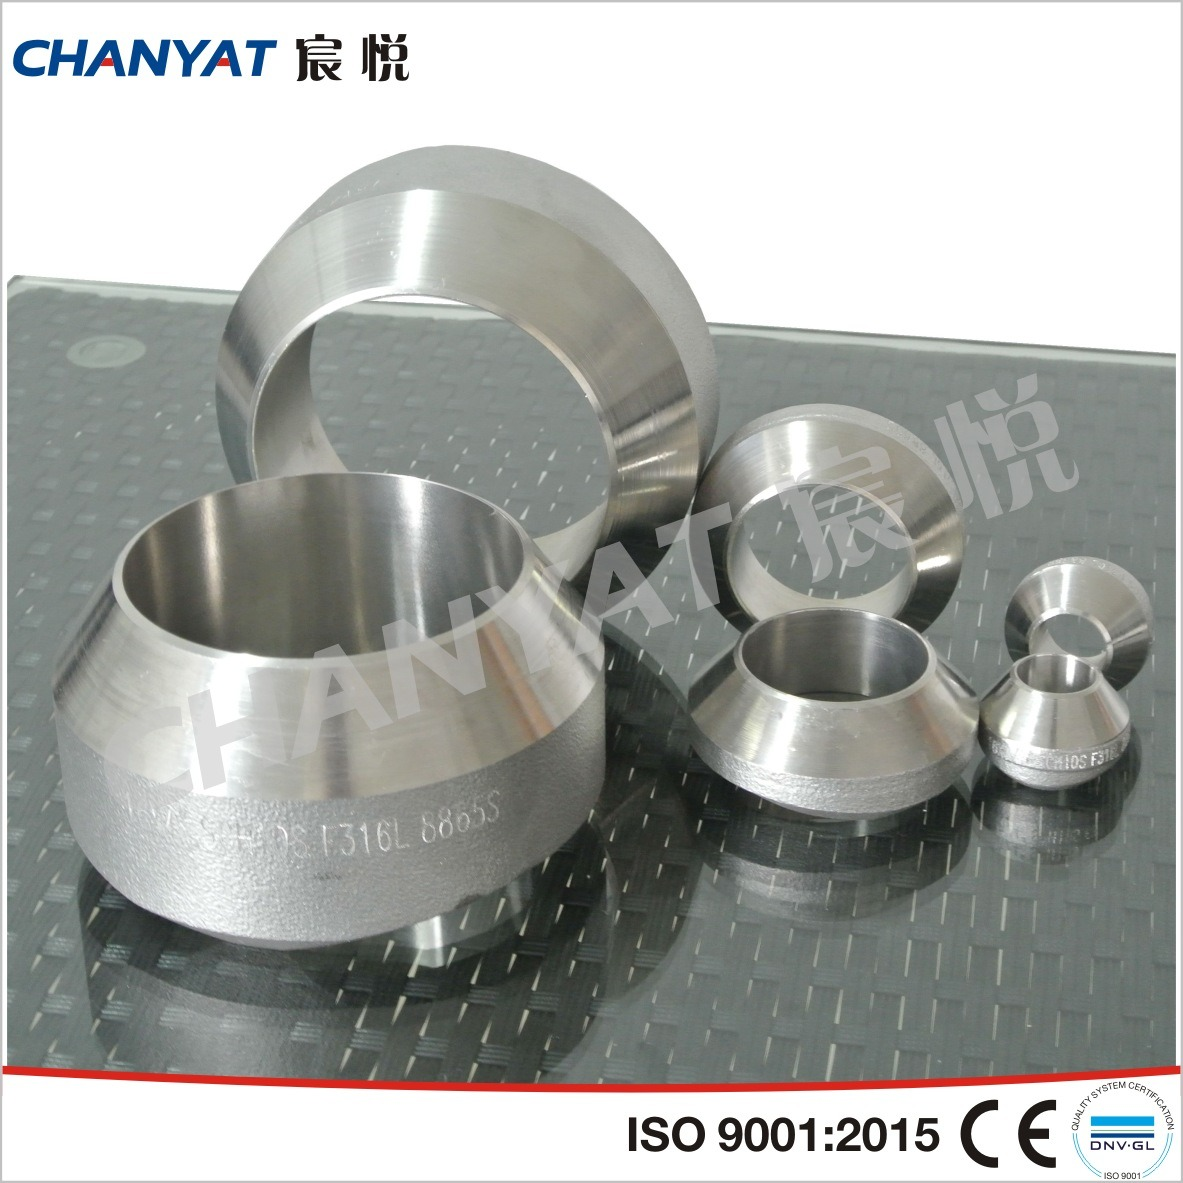 Mss, ASME, DIN, JIS, GOST Alloy Steel Branch Outlet Fittings